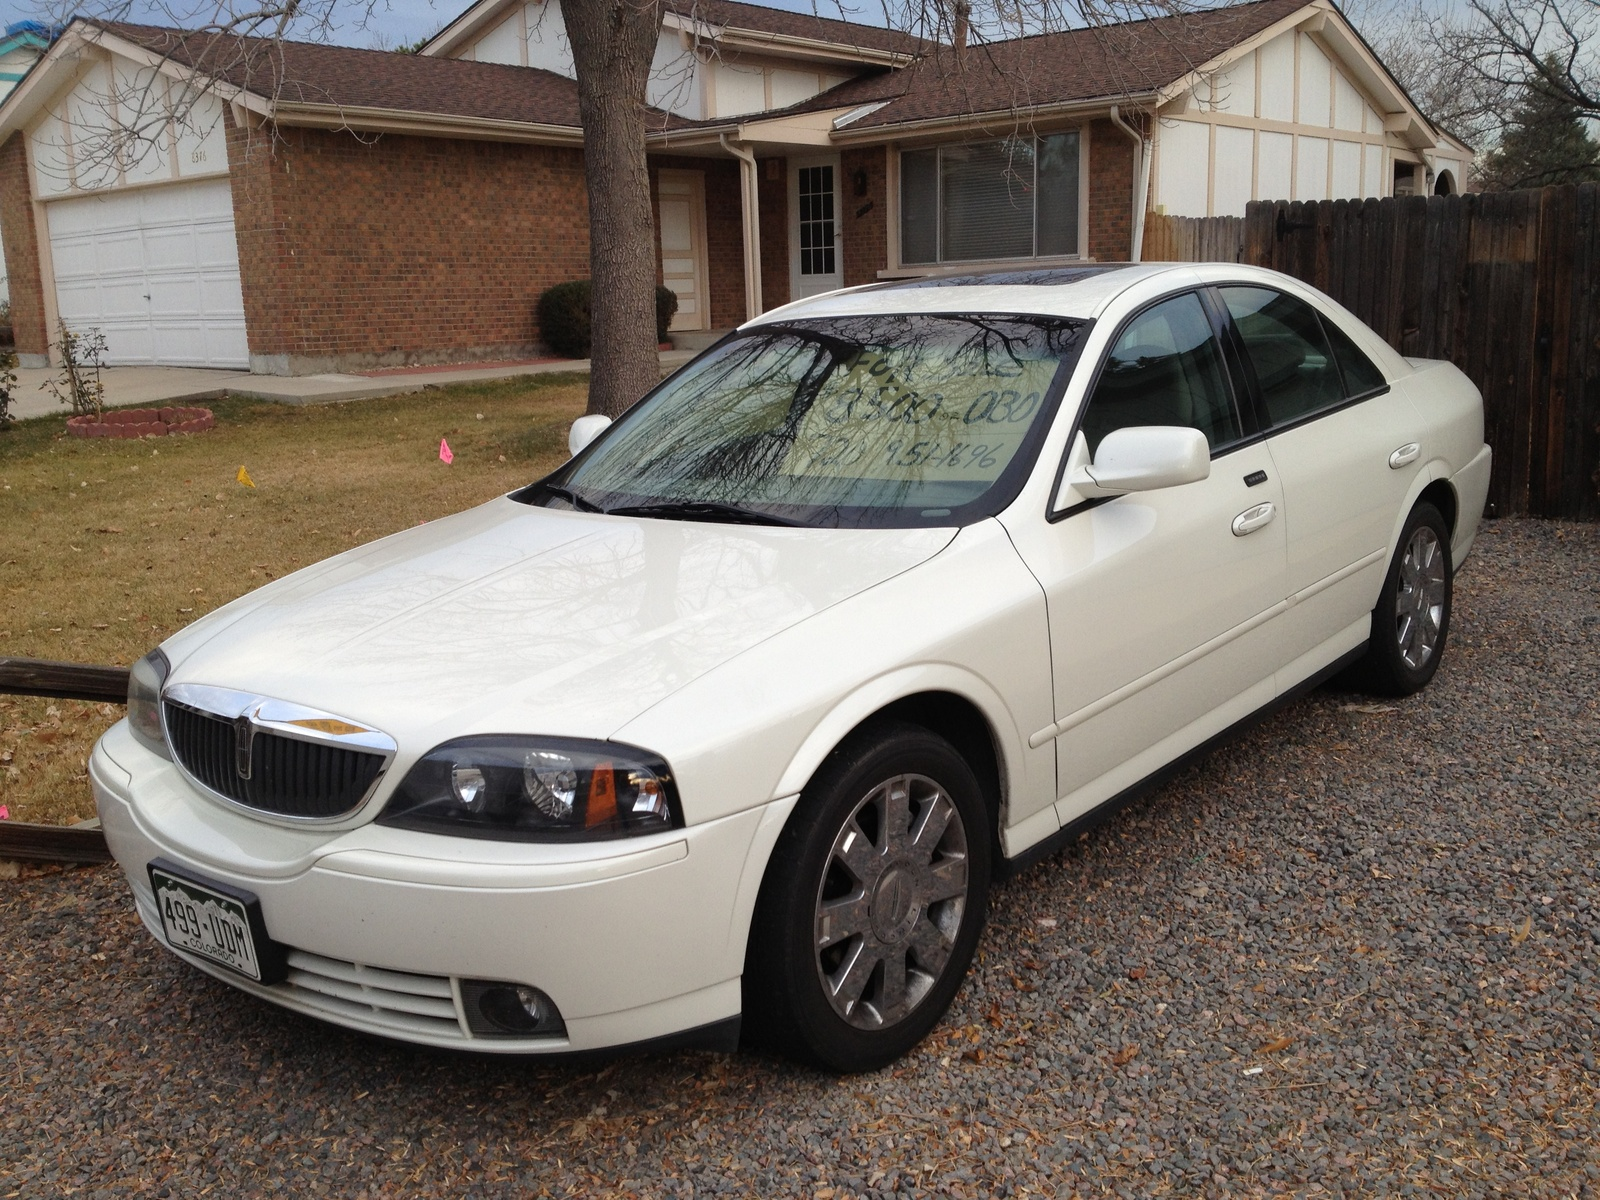 2004 Lincoln Ls #22